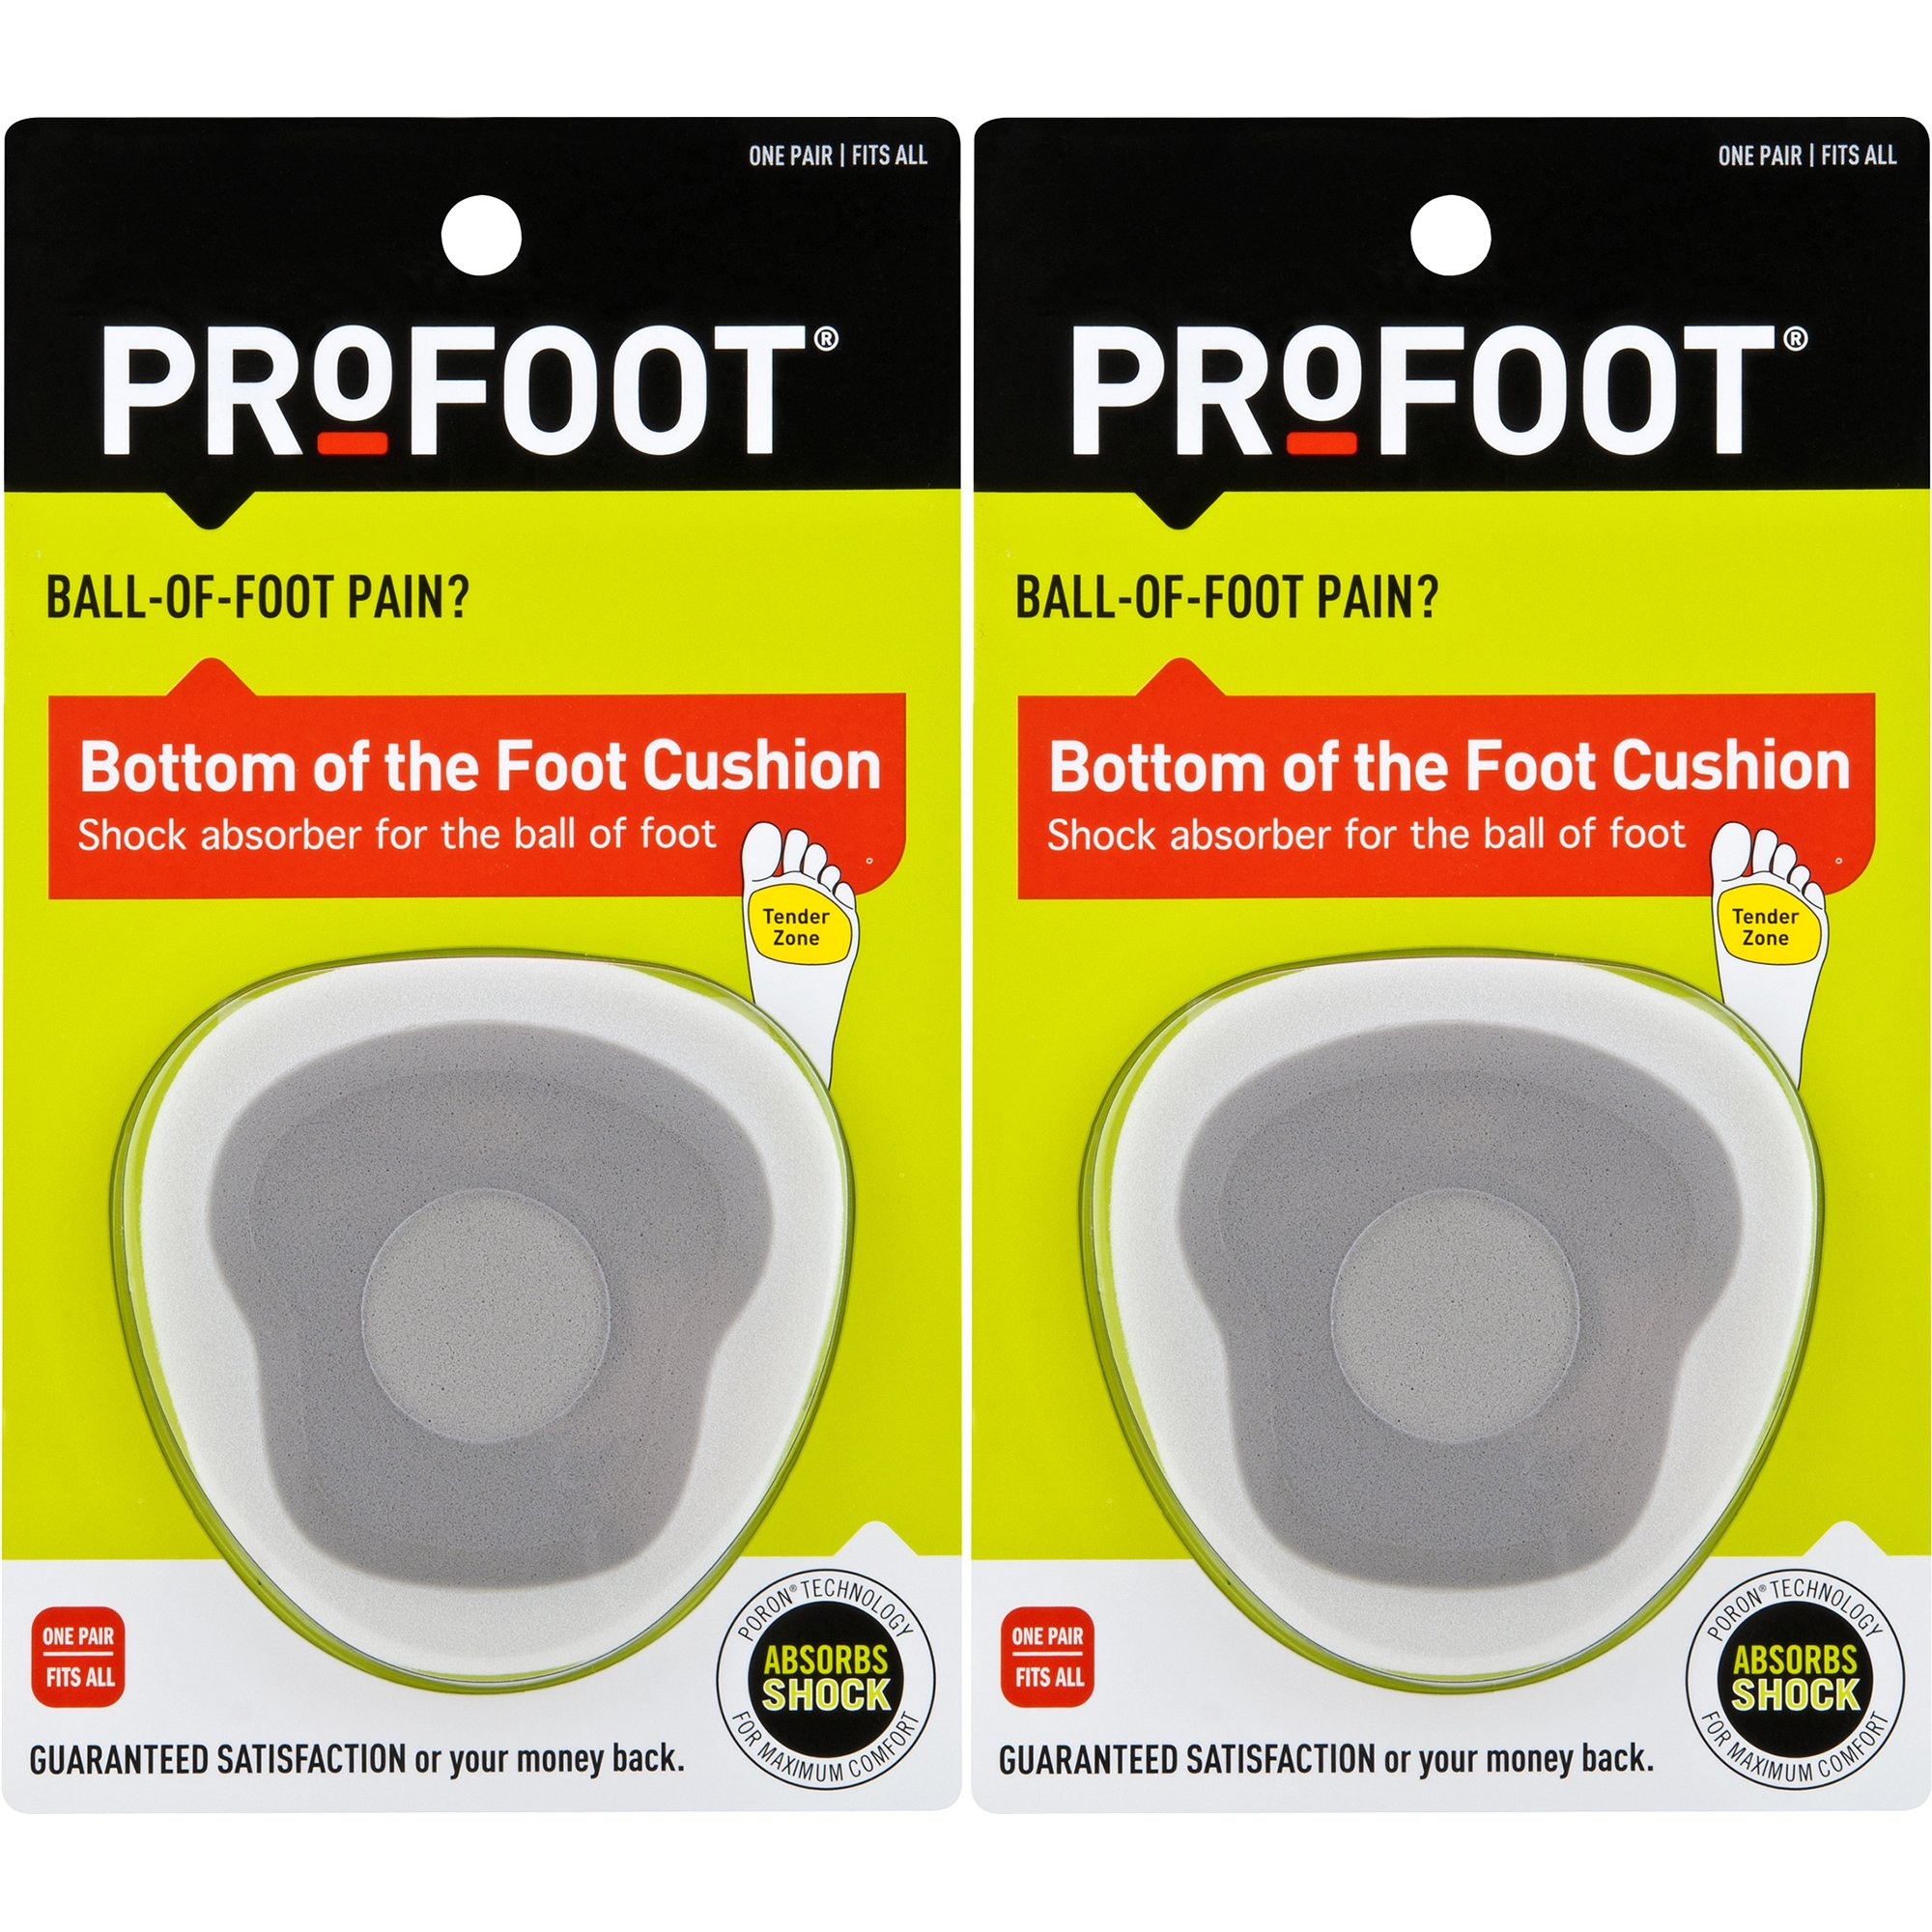 PROFOOT, Bottom of The Foot Cushion, 2 Pair, Ball of Foot Cushion Provides Padding to Metatarsals, Avoid Callouses, Helps Reduce Pain in The Forefoot, Try for Relief from Neuroma, Good for High Heels by Profoot